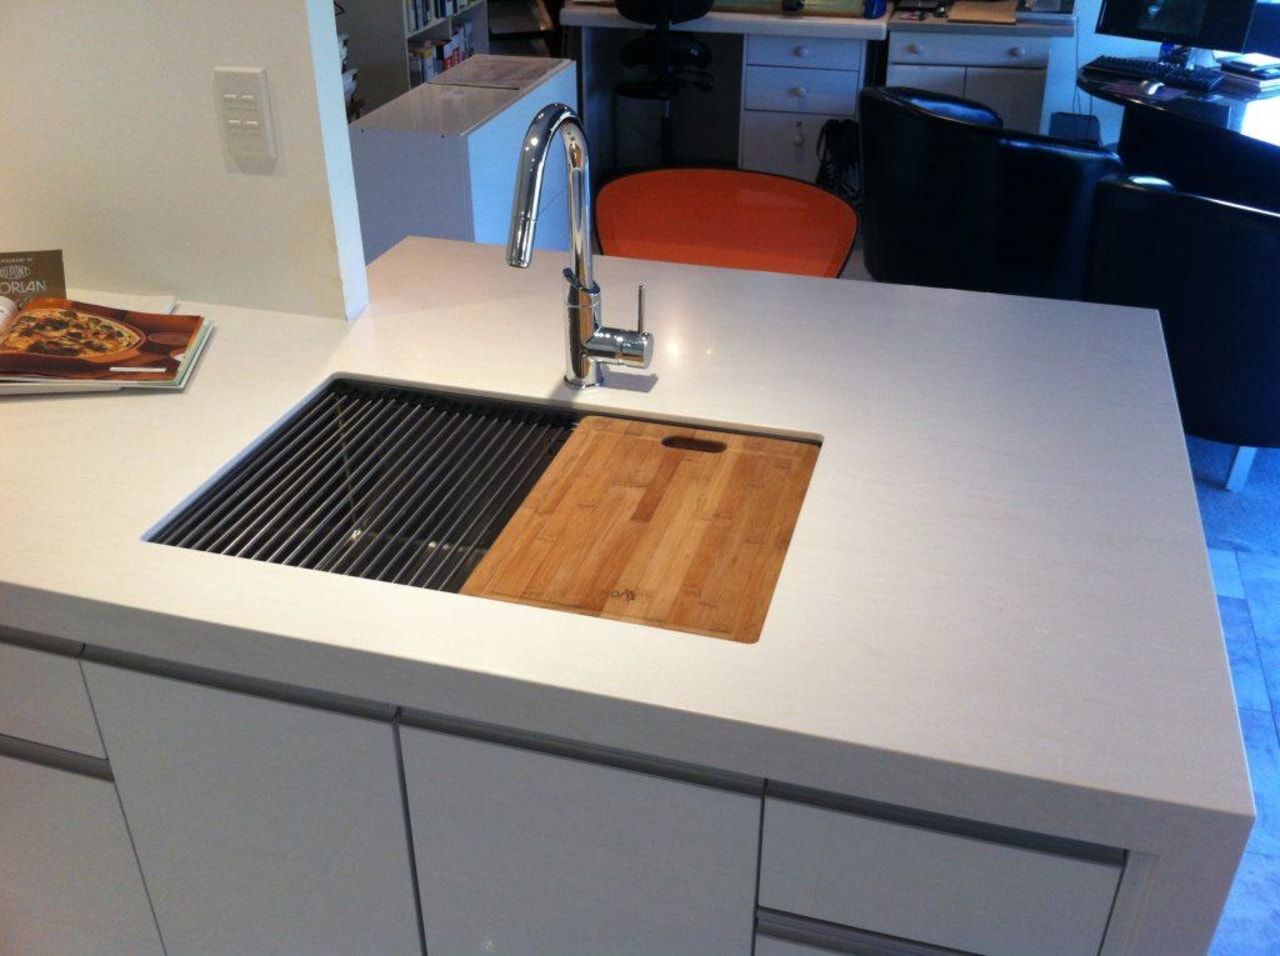 Opting for a sink that supports a chopping countertop, furniture, kitchen, table, gray